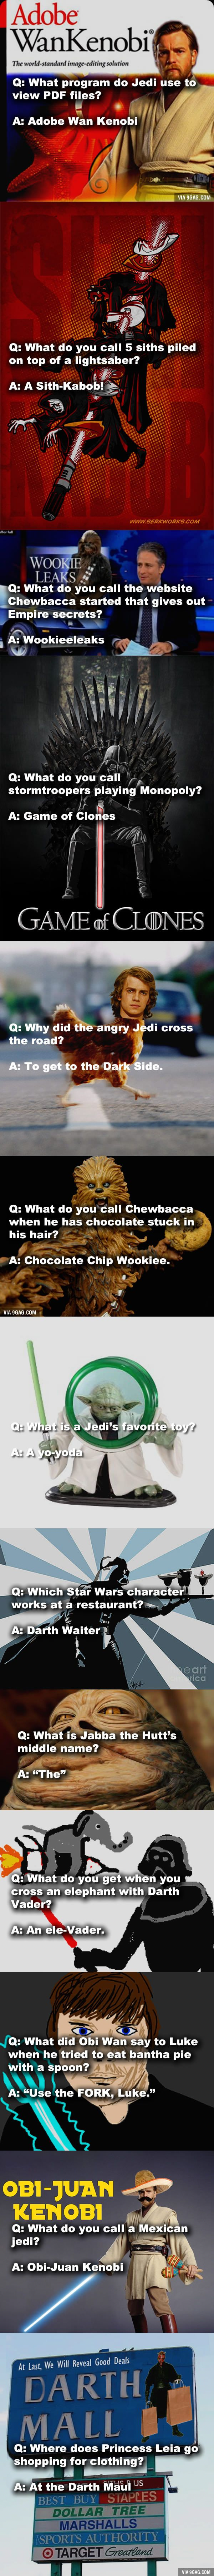 13 Creative Star Wars Jokes For Fans That Might Need A Little Laugh